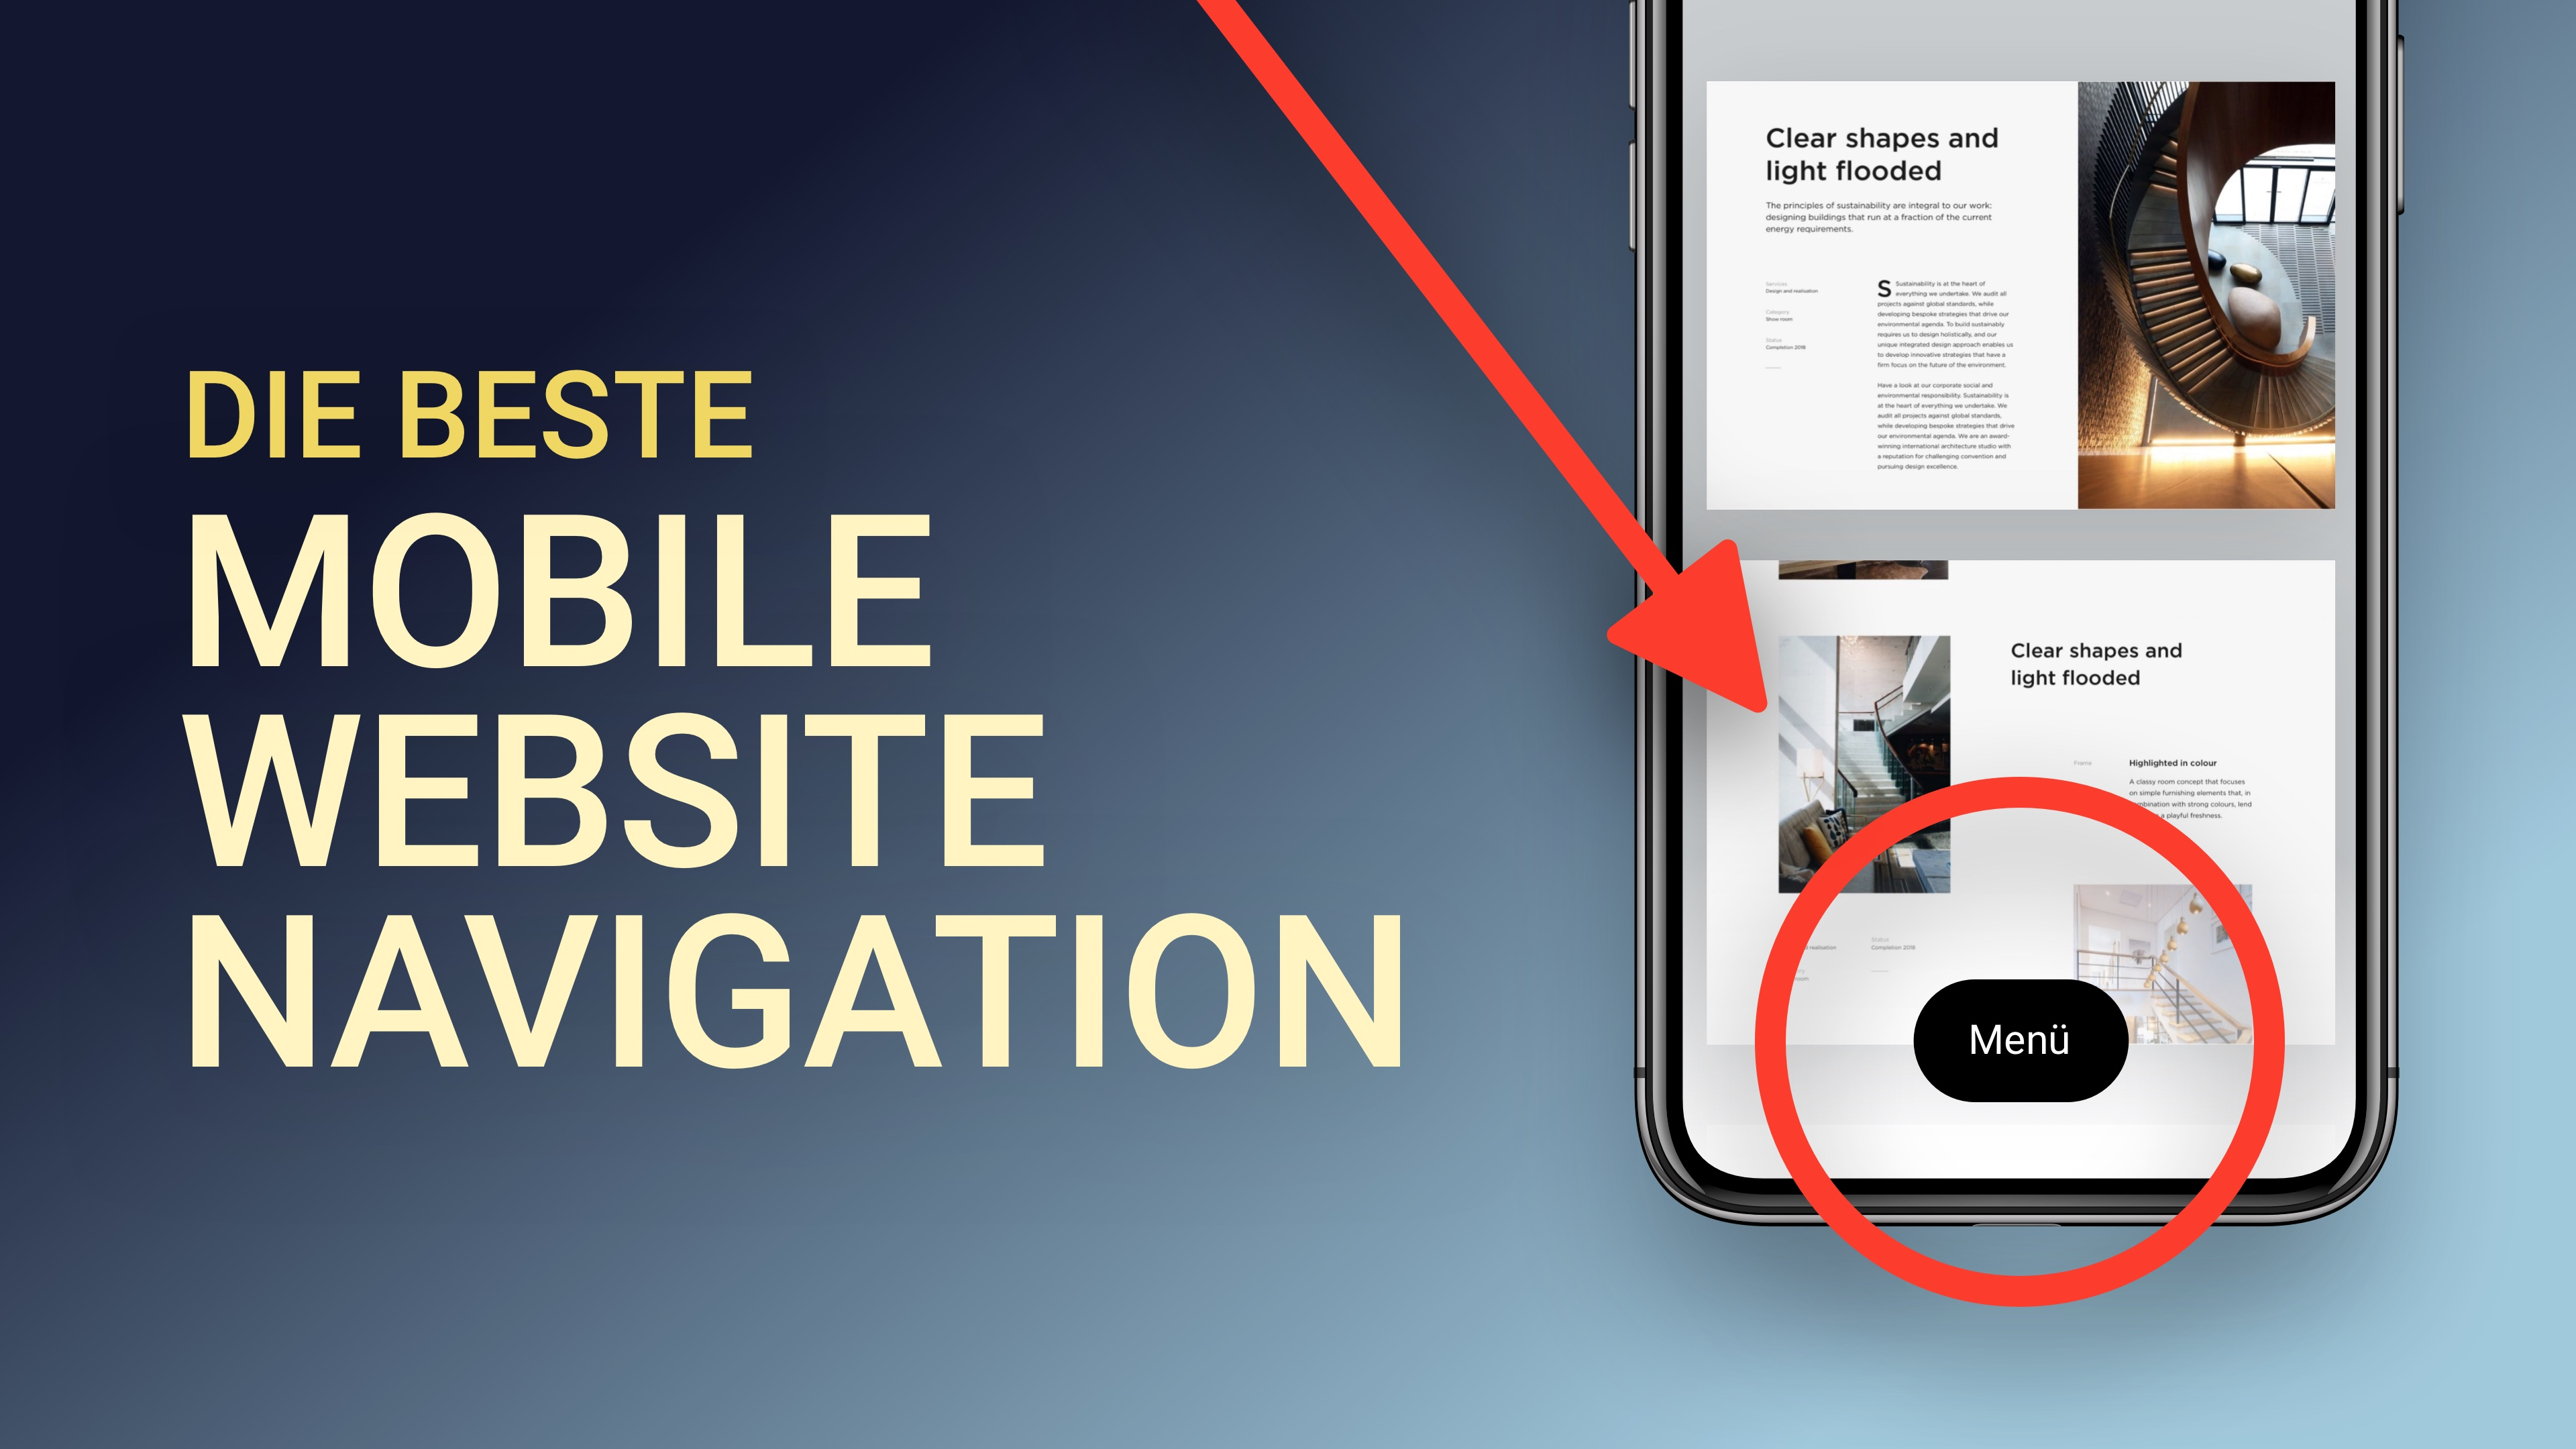 Die beste mobile Website Navigation bauen (gute UX)